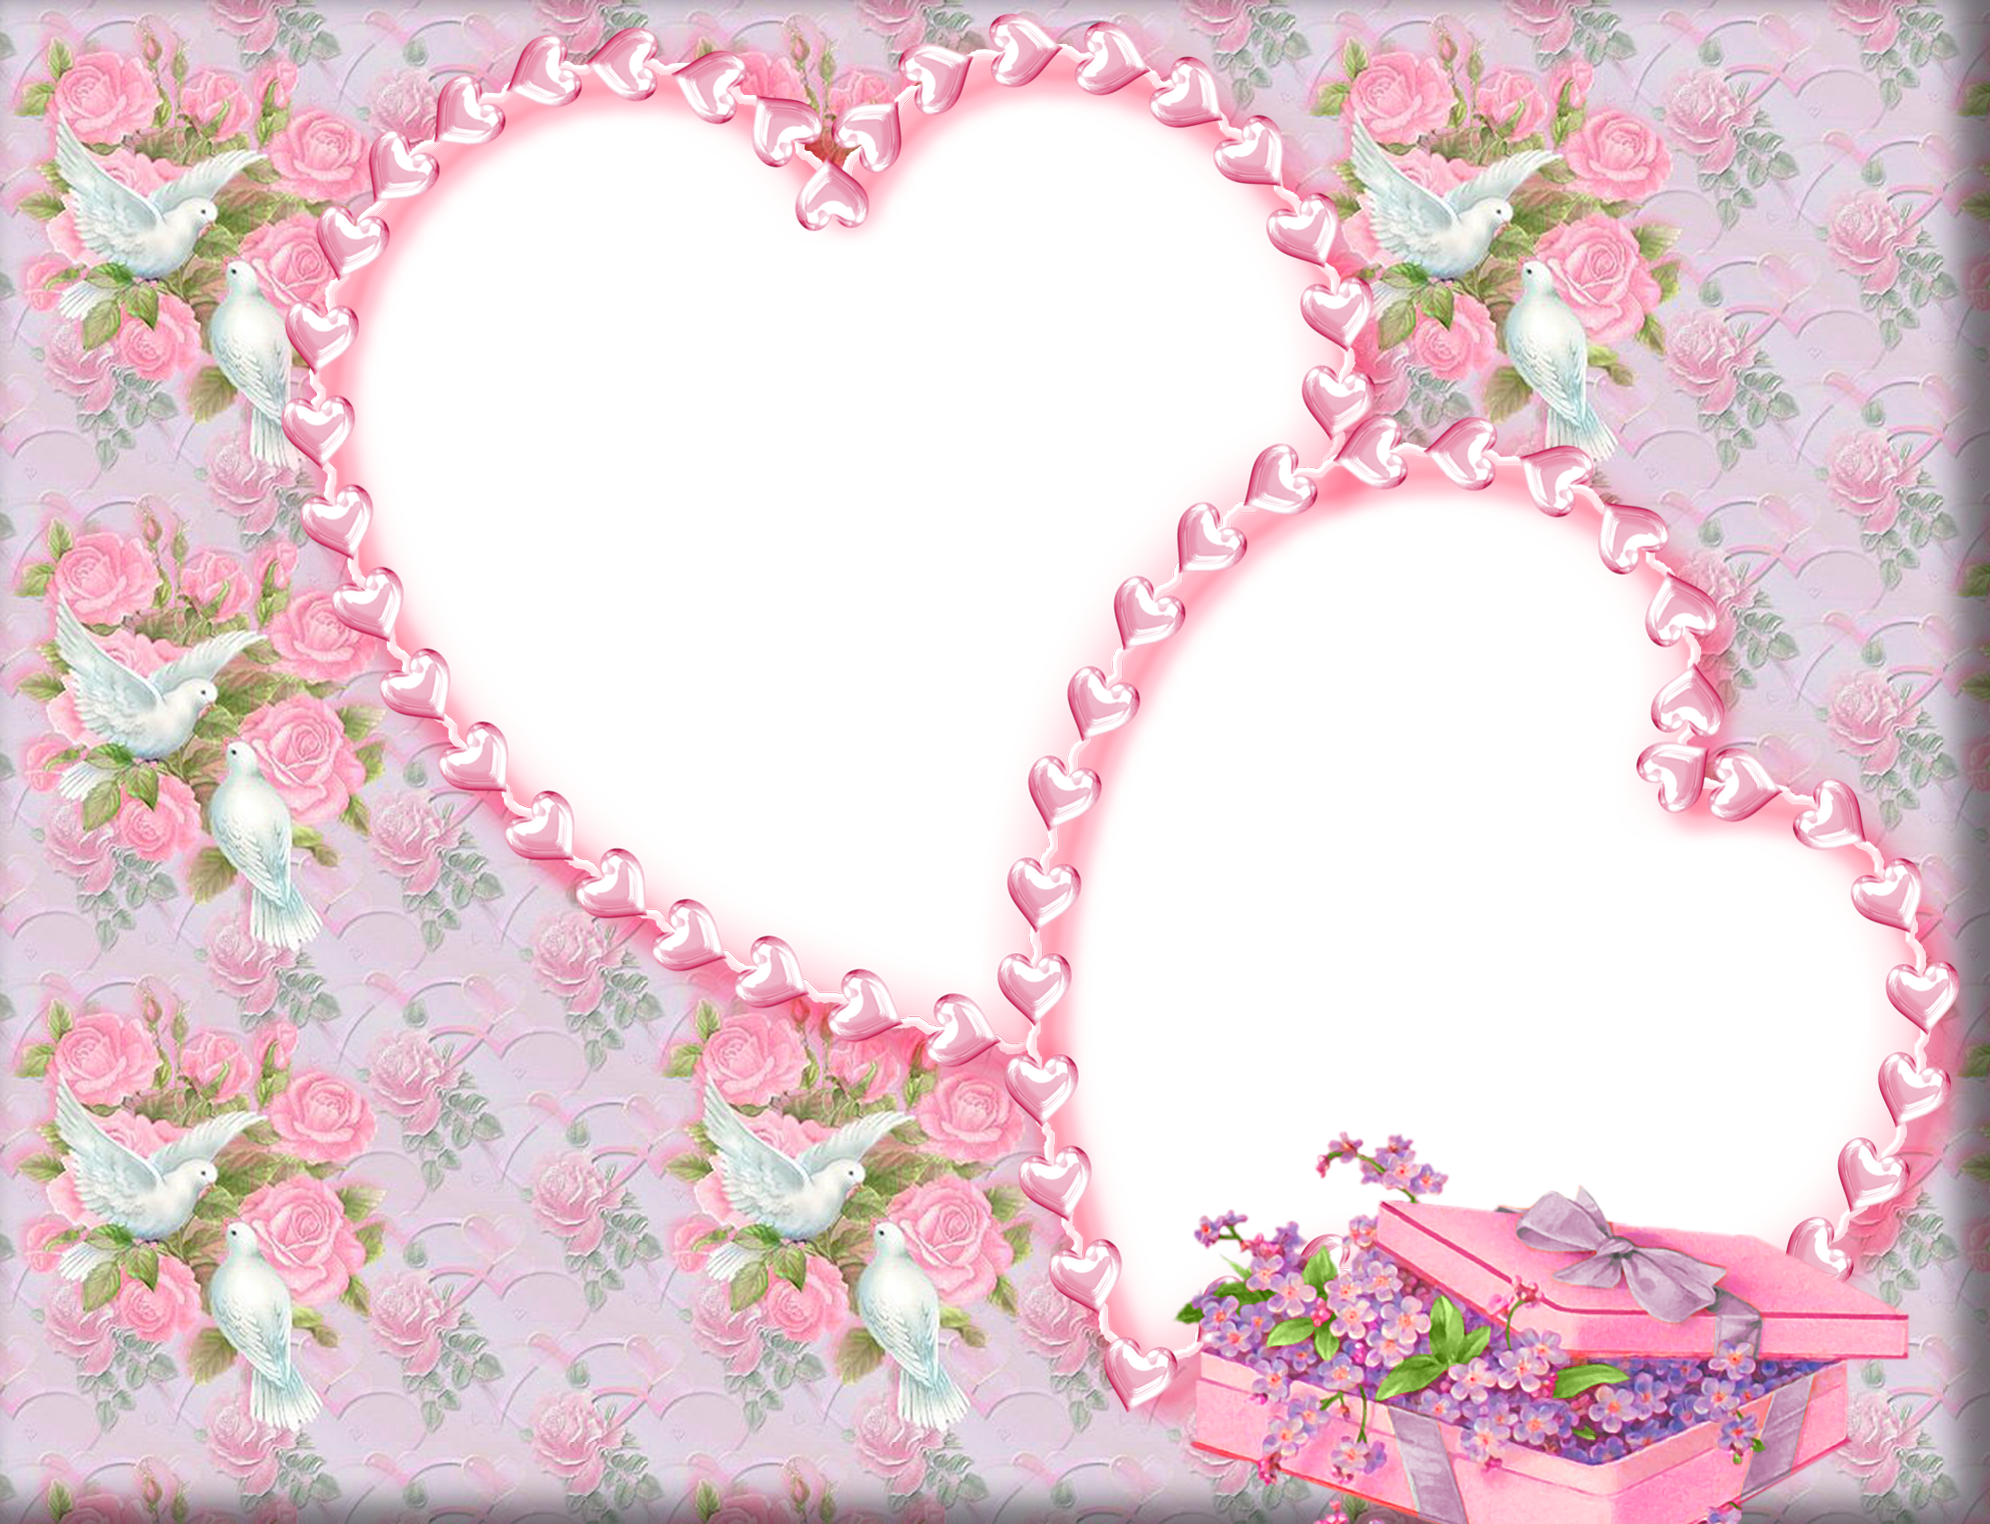 Cute png photo frame. Doves clipart pink